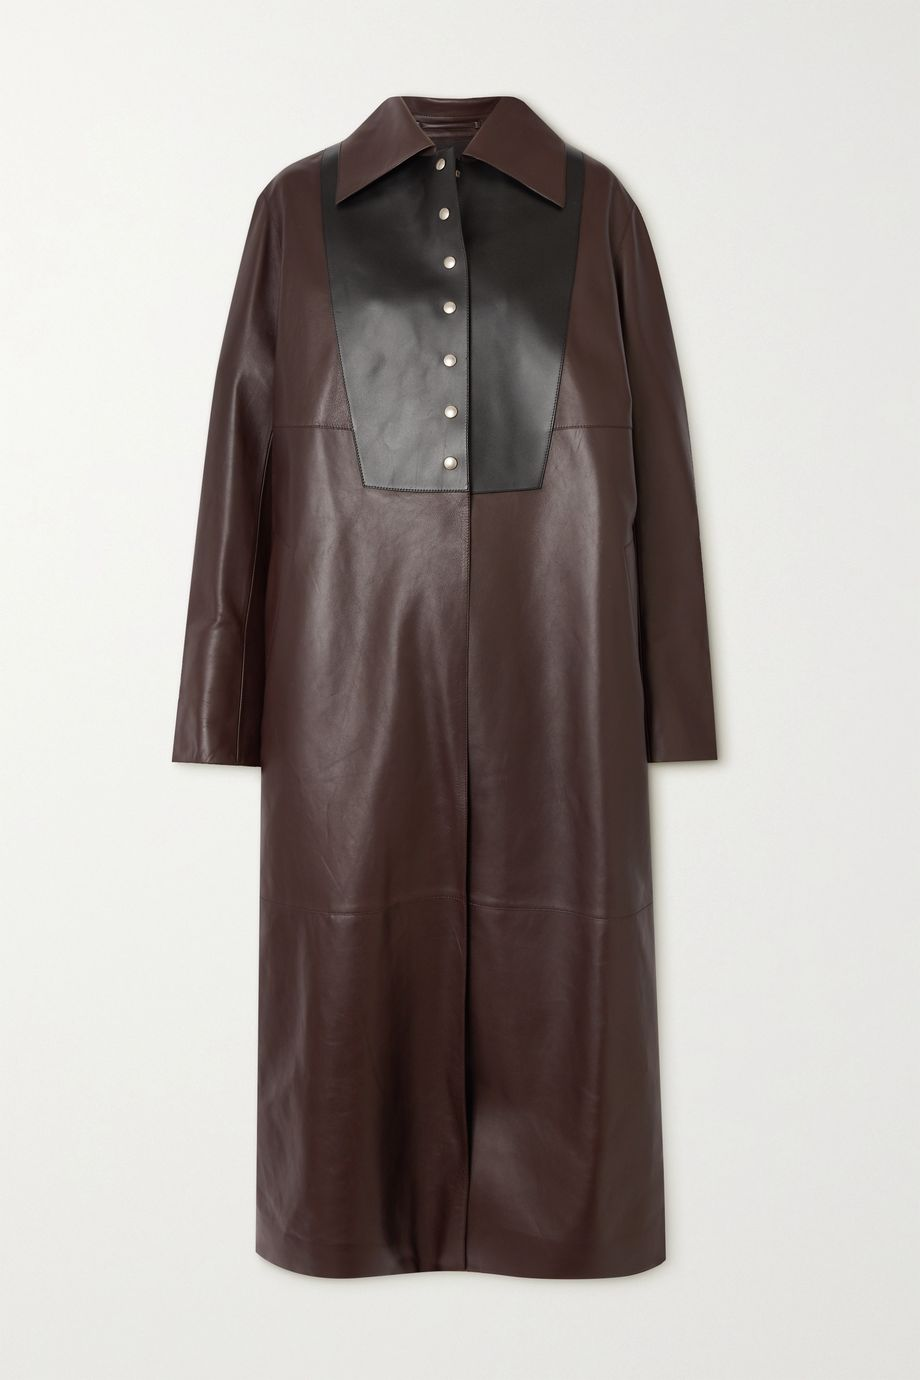 Loewe Two-tone leather coat